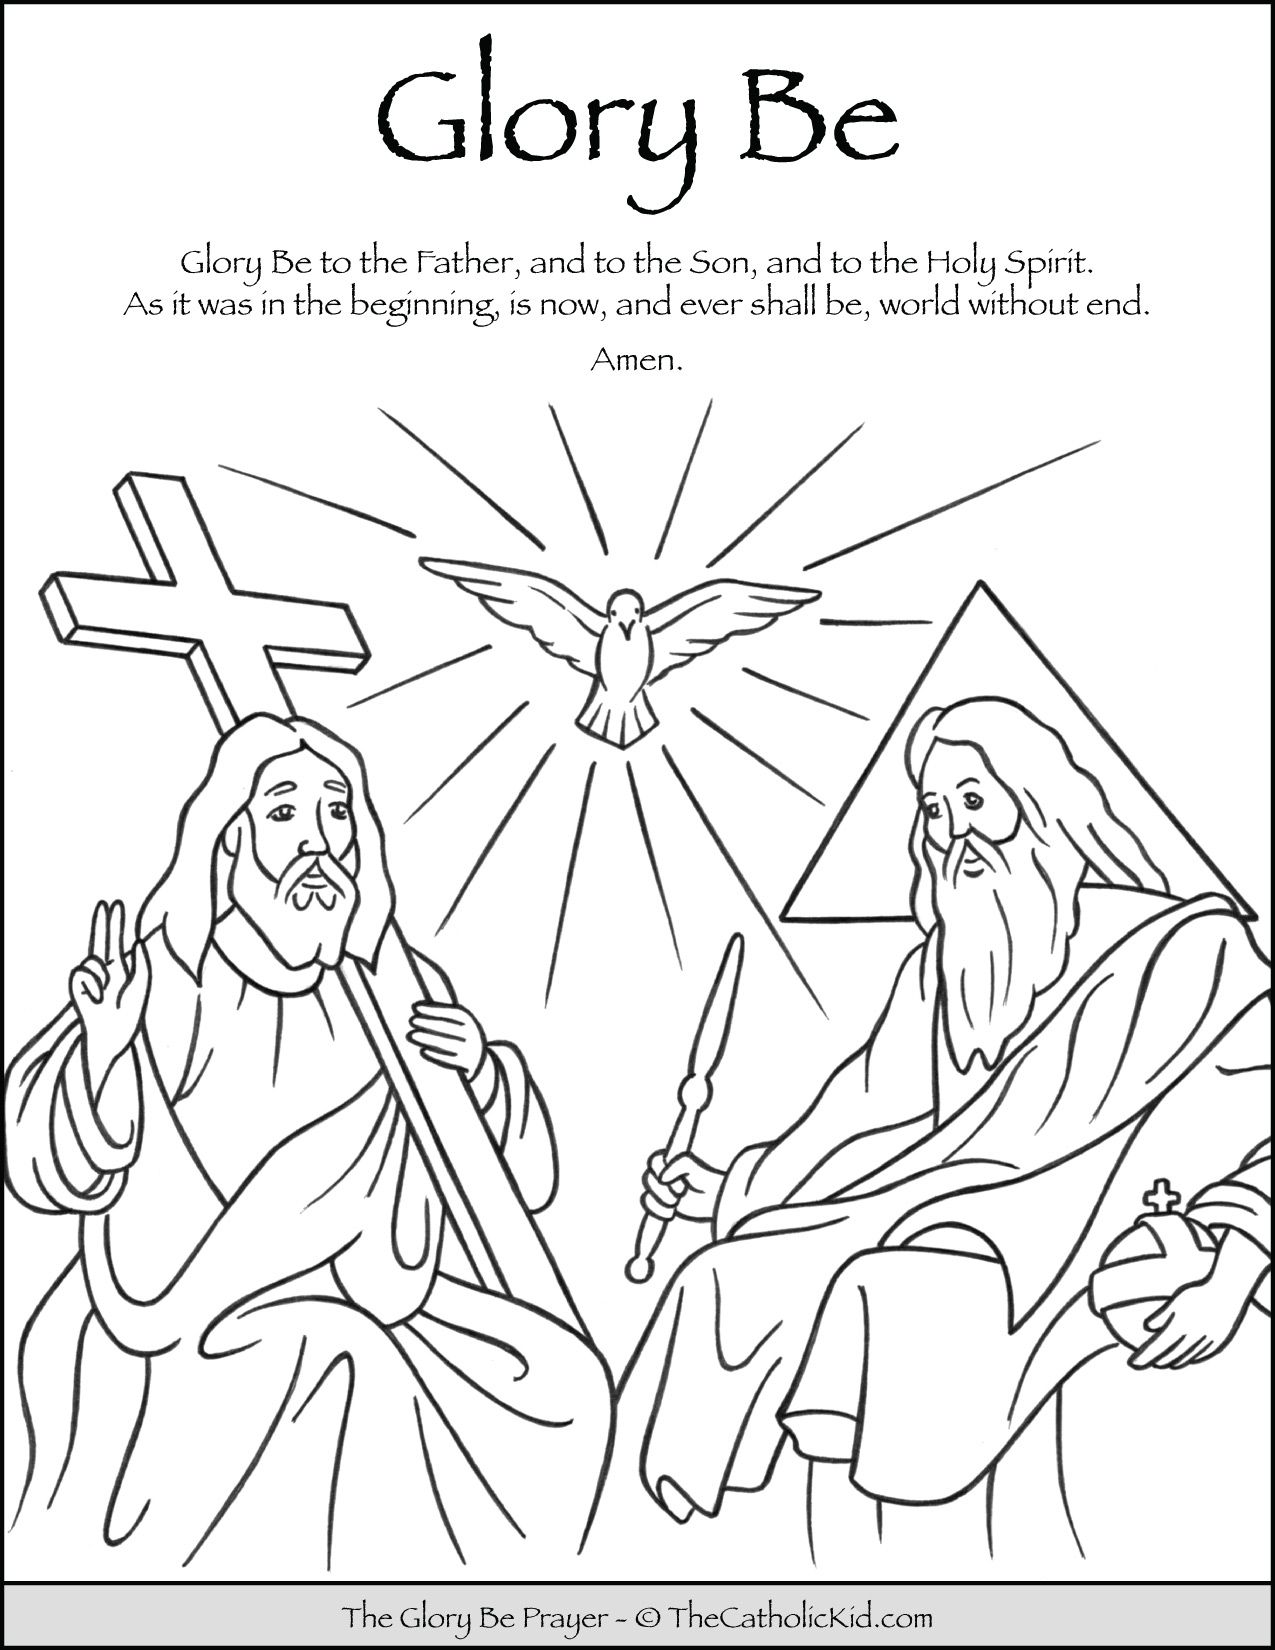 Glory Be Prayer Coloring Page Thecatholickid Com Glory Be Prayer Catholic Coloring Prayers For Children